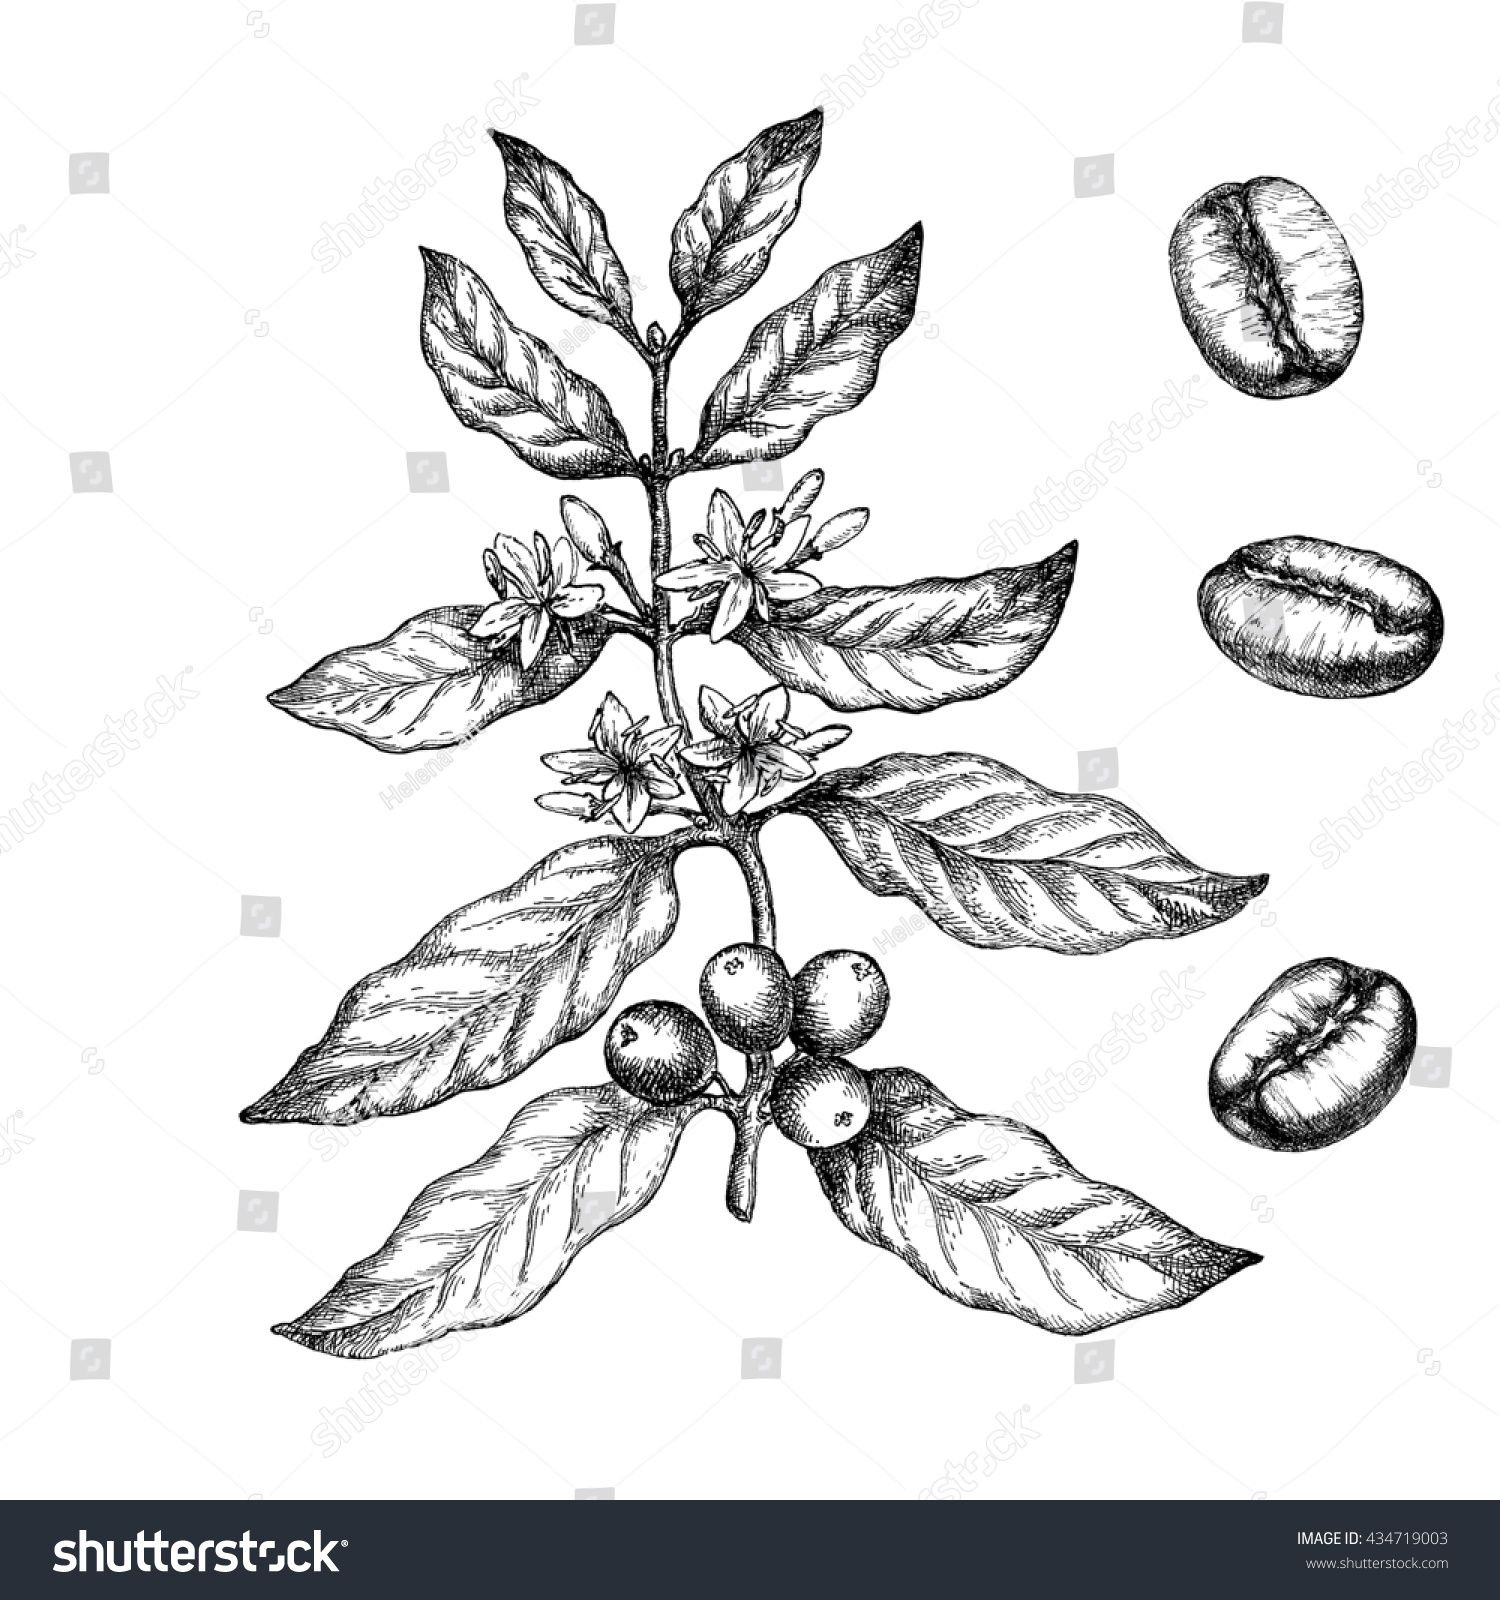 Hand Drawn Vintage Coffee Plant Elements For The Graphic Design Of